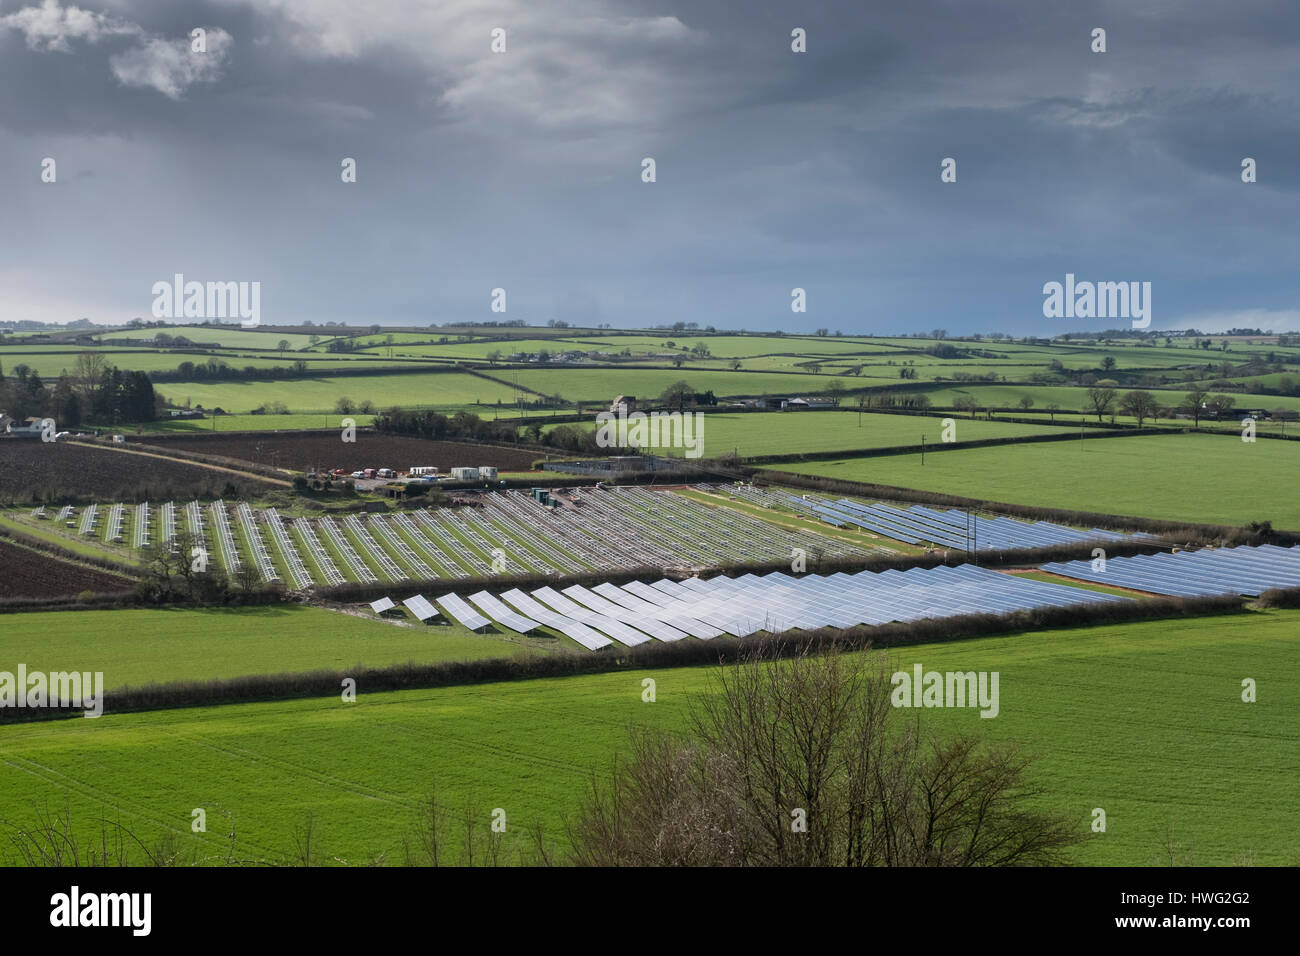 Milborne Port, Somerset, UK. 21st March 2017. A Solar Farm under construction amongst the fields in the spring sunshine. Stock Photo